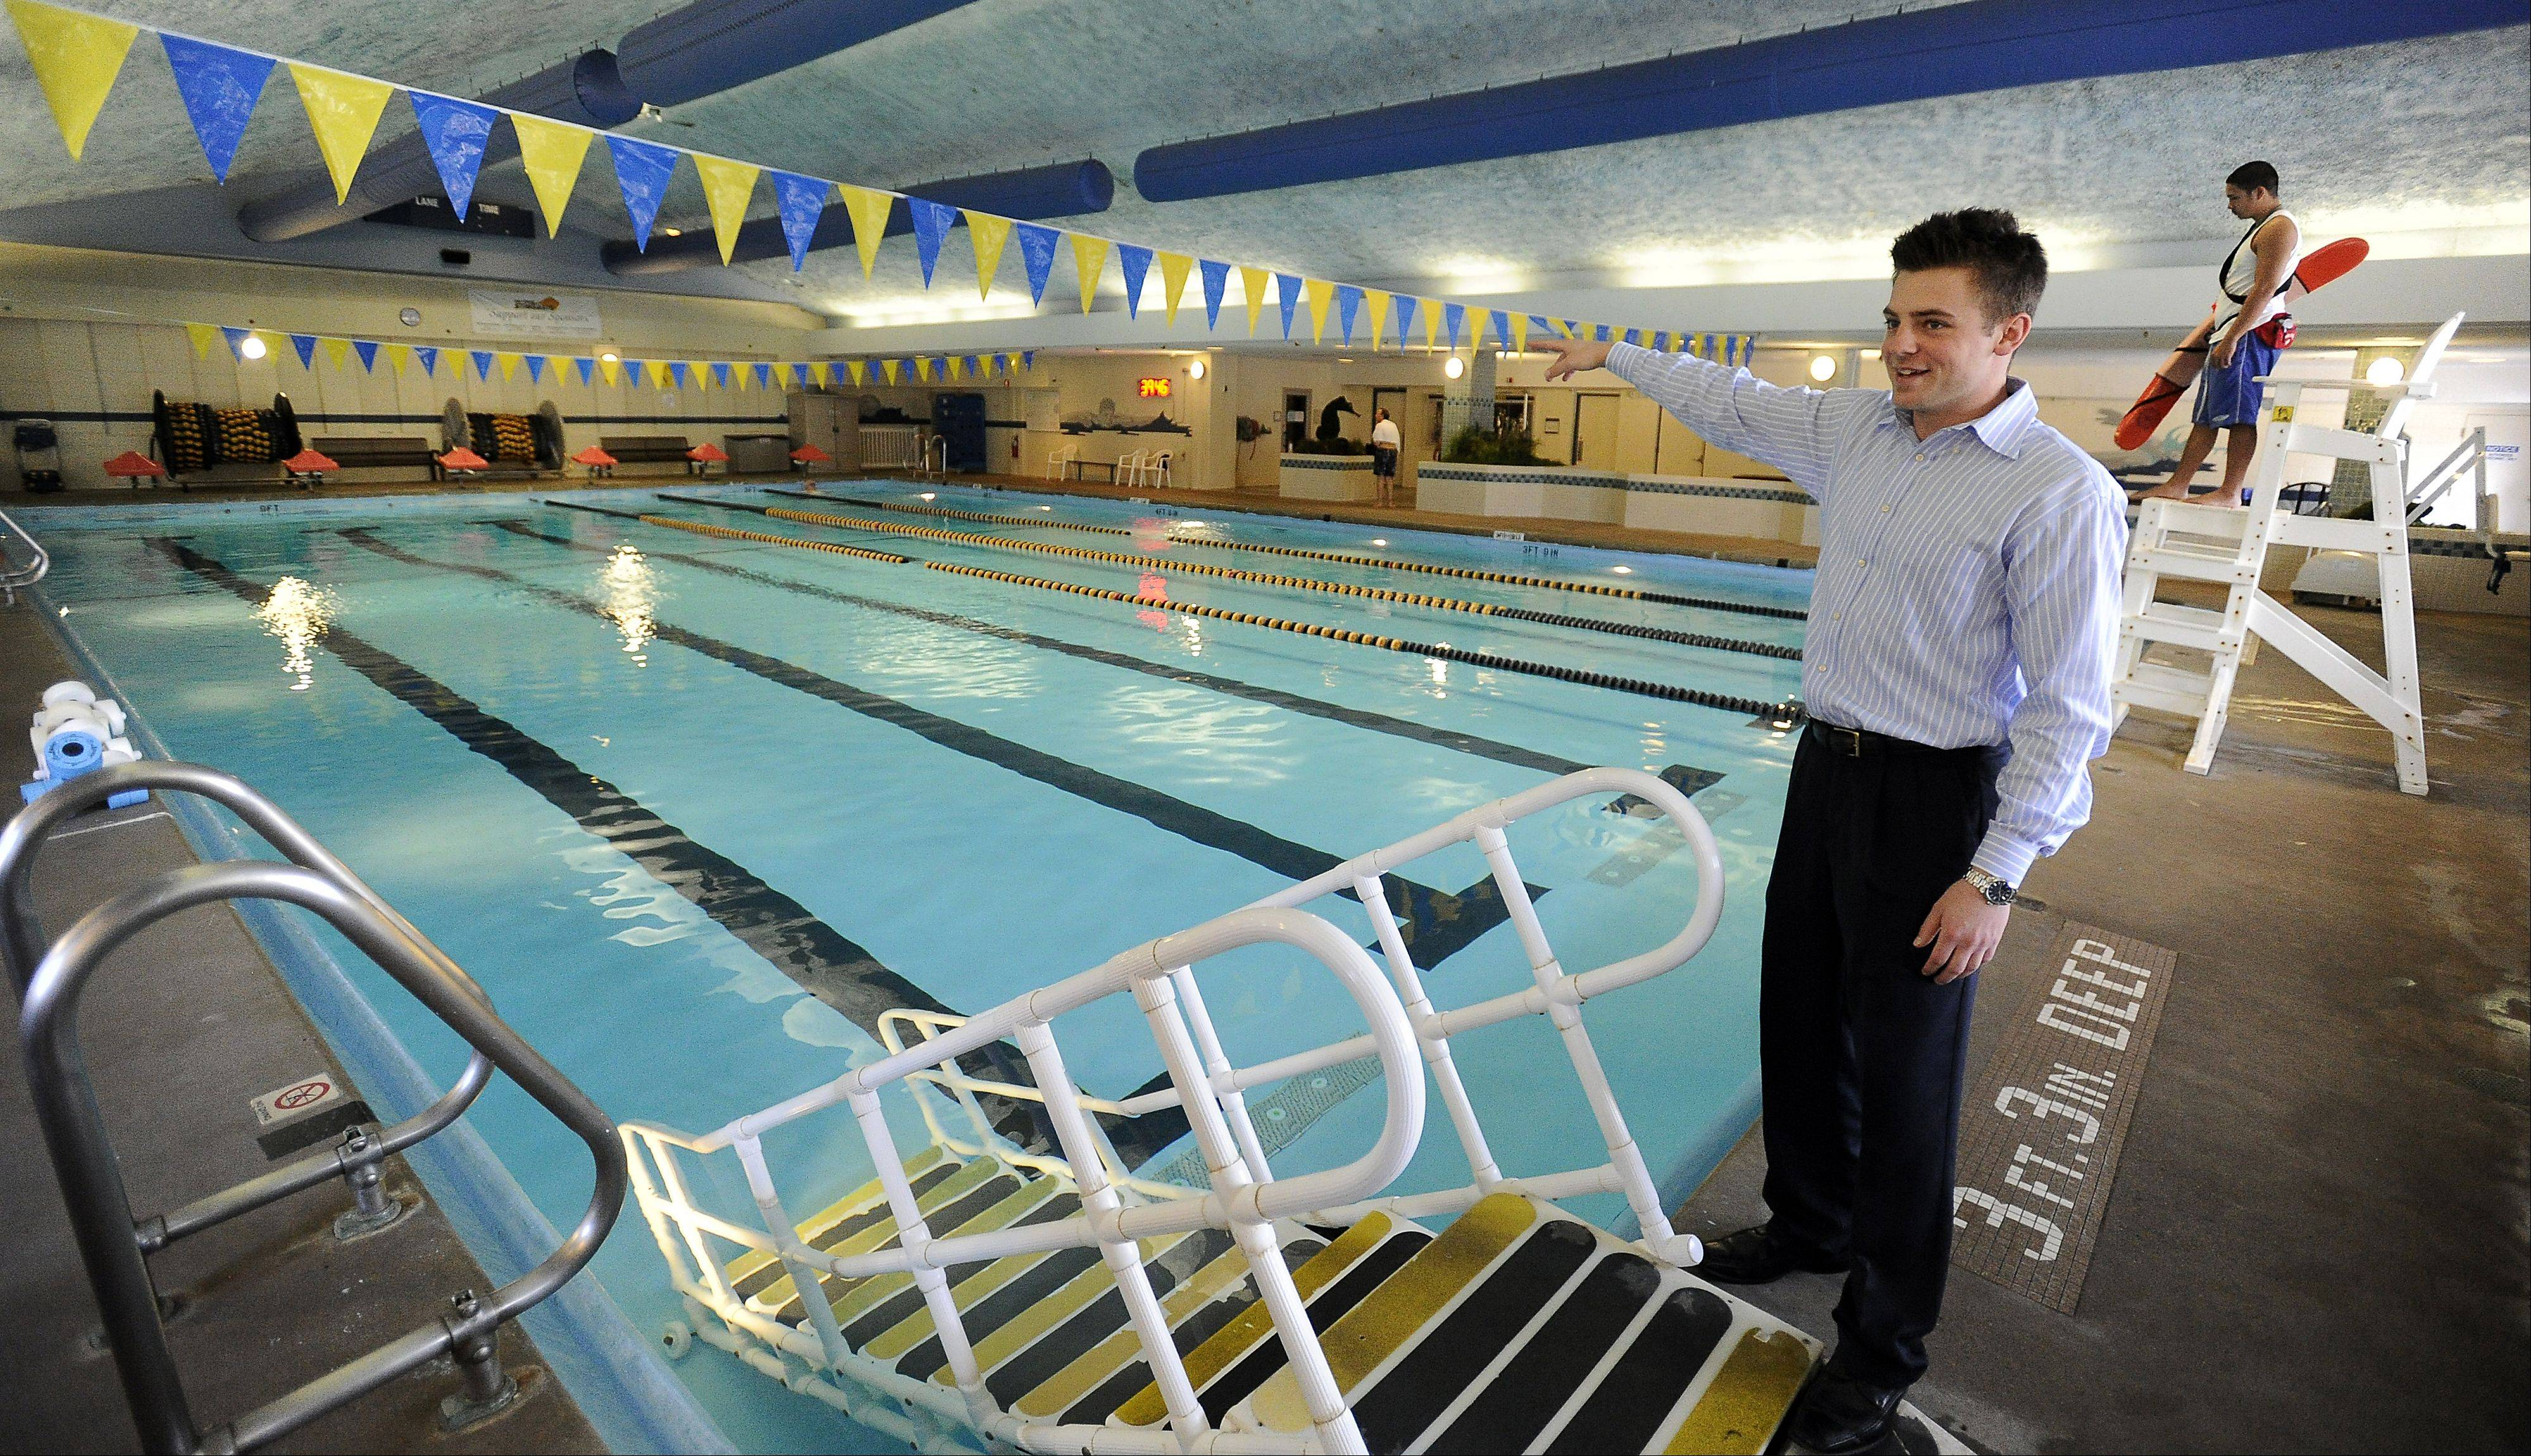 Jason Dale, an employee of the Elk Grove Park District Pavilion Aquatic Center, points out how the 25-yard indoor pool will be expanded starting next week. The entire renovation will last at least a year, officials said.